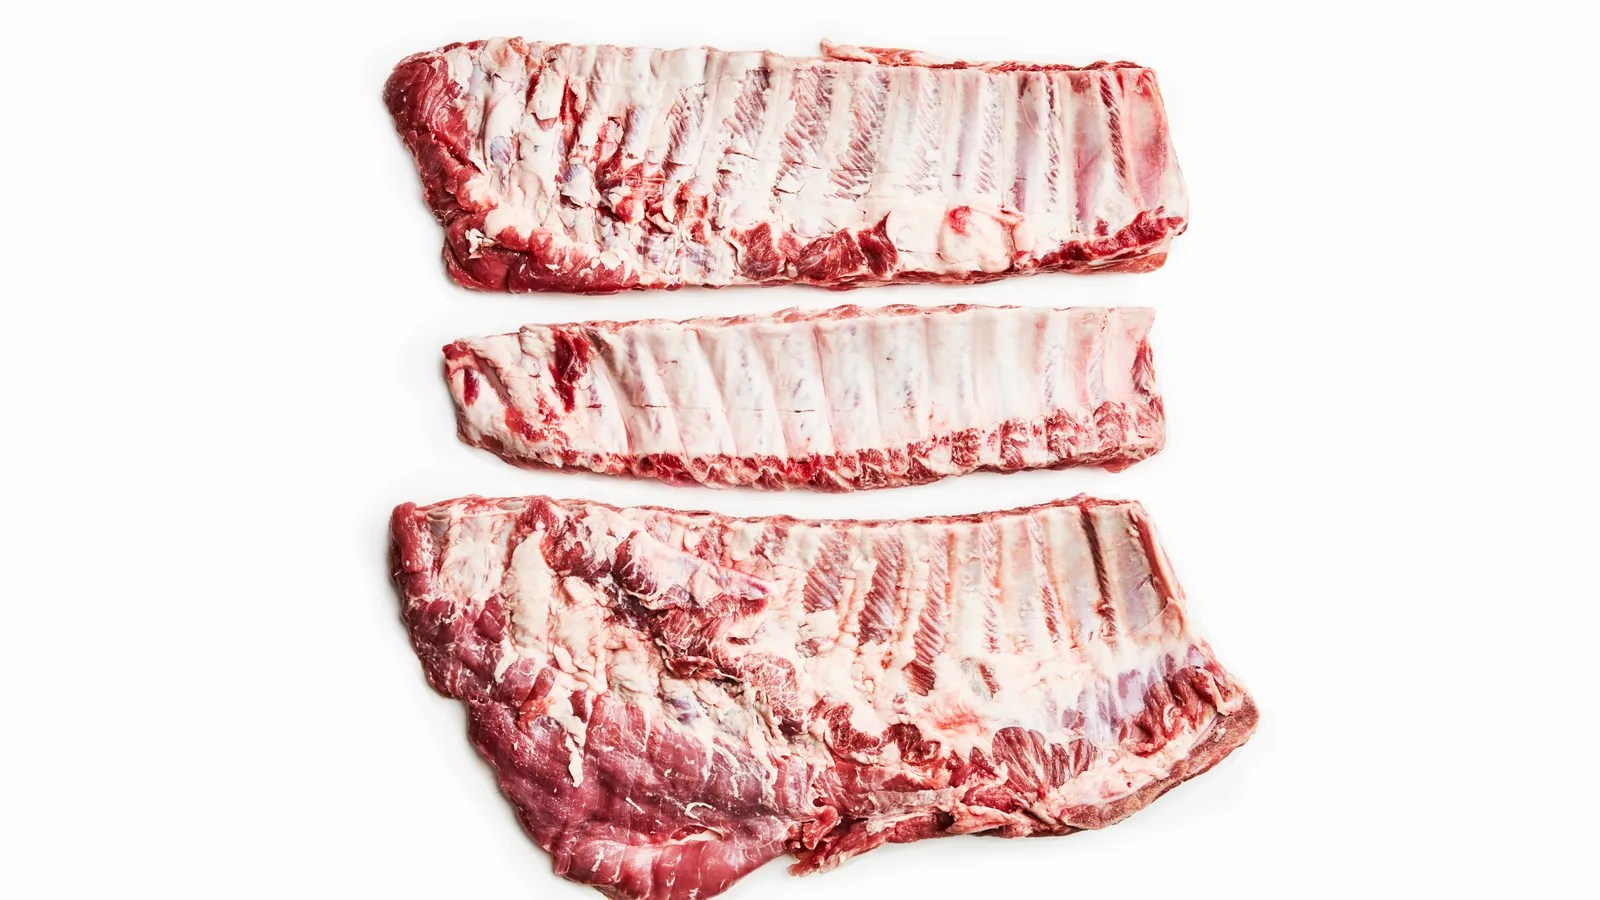 the types of pork ribs and how to buy